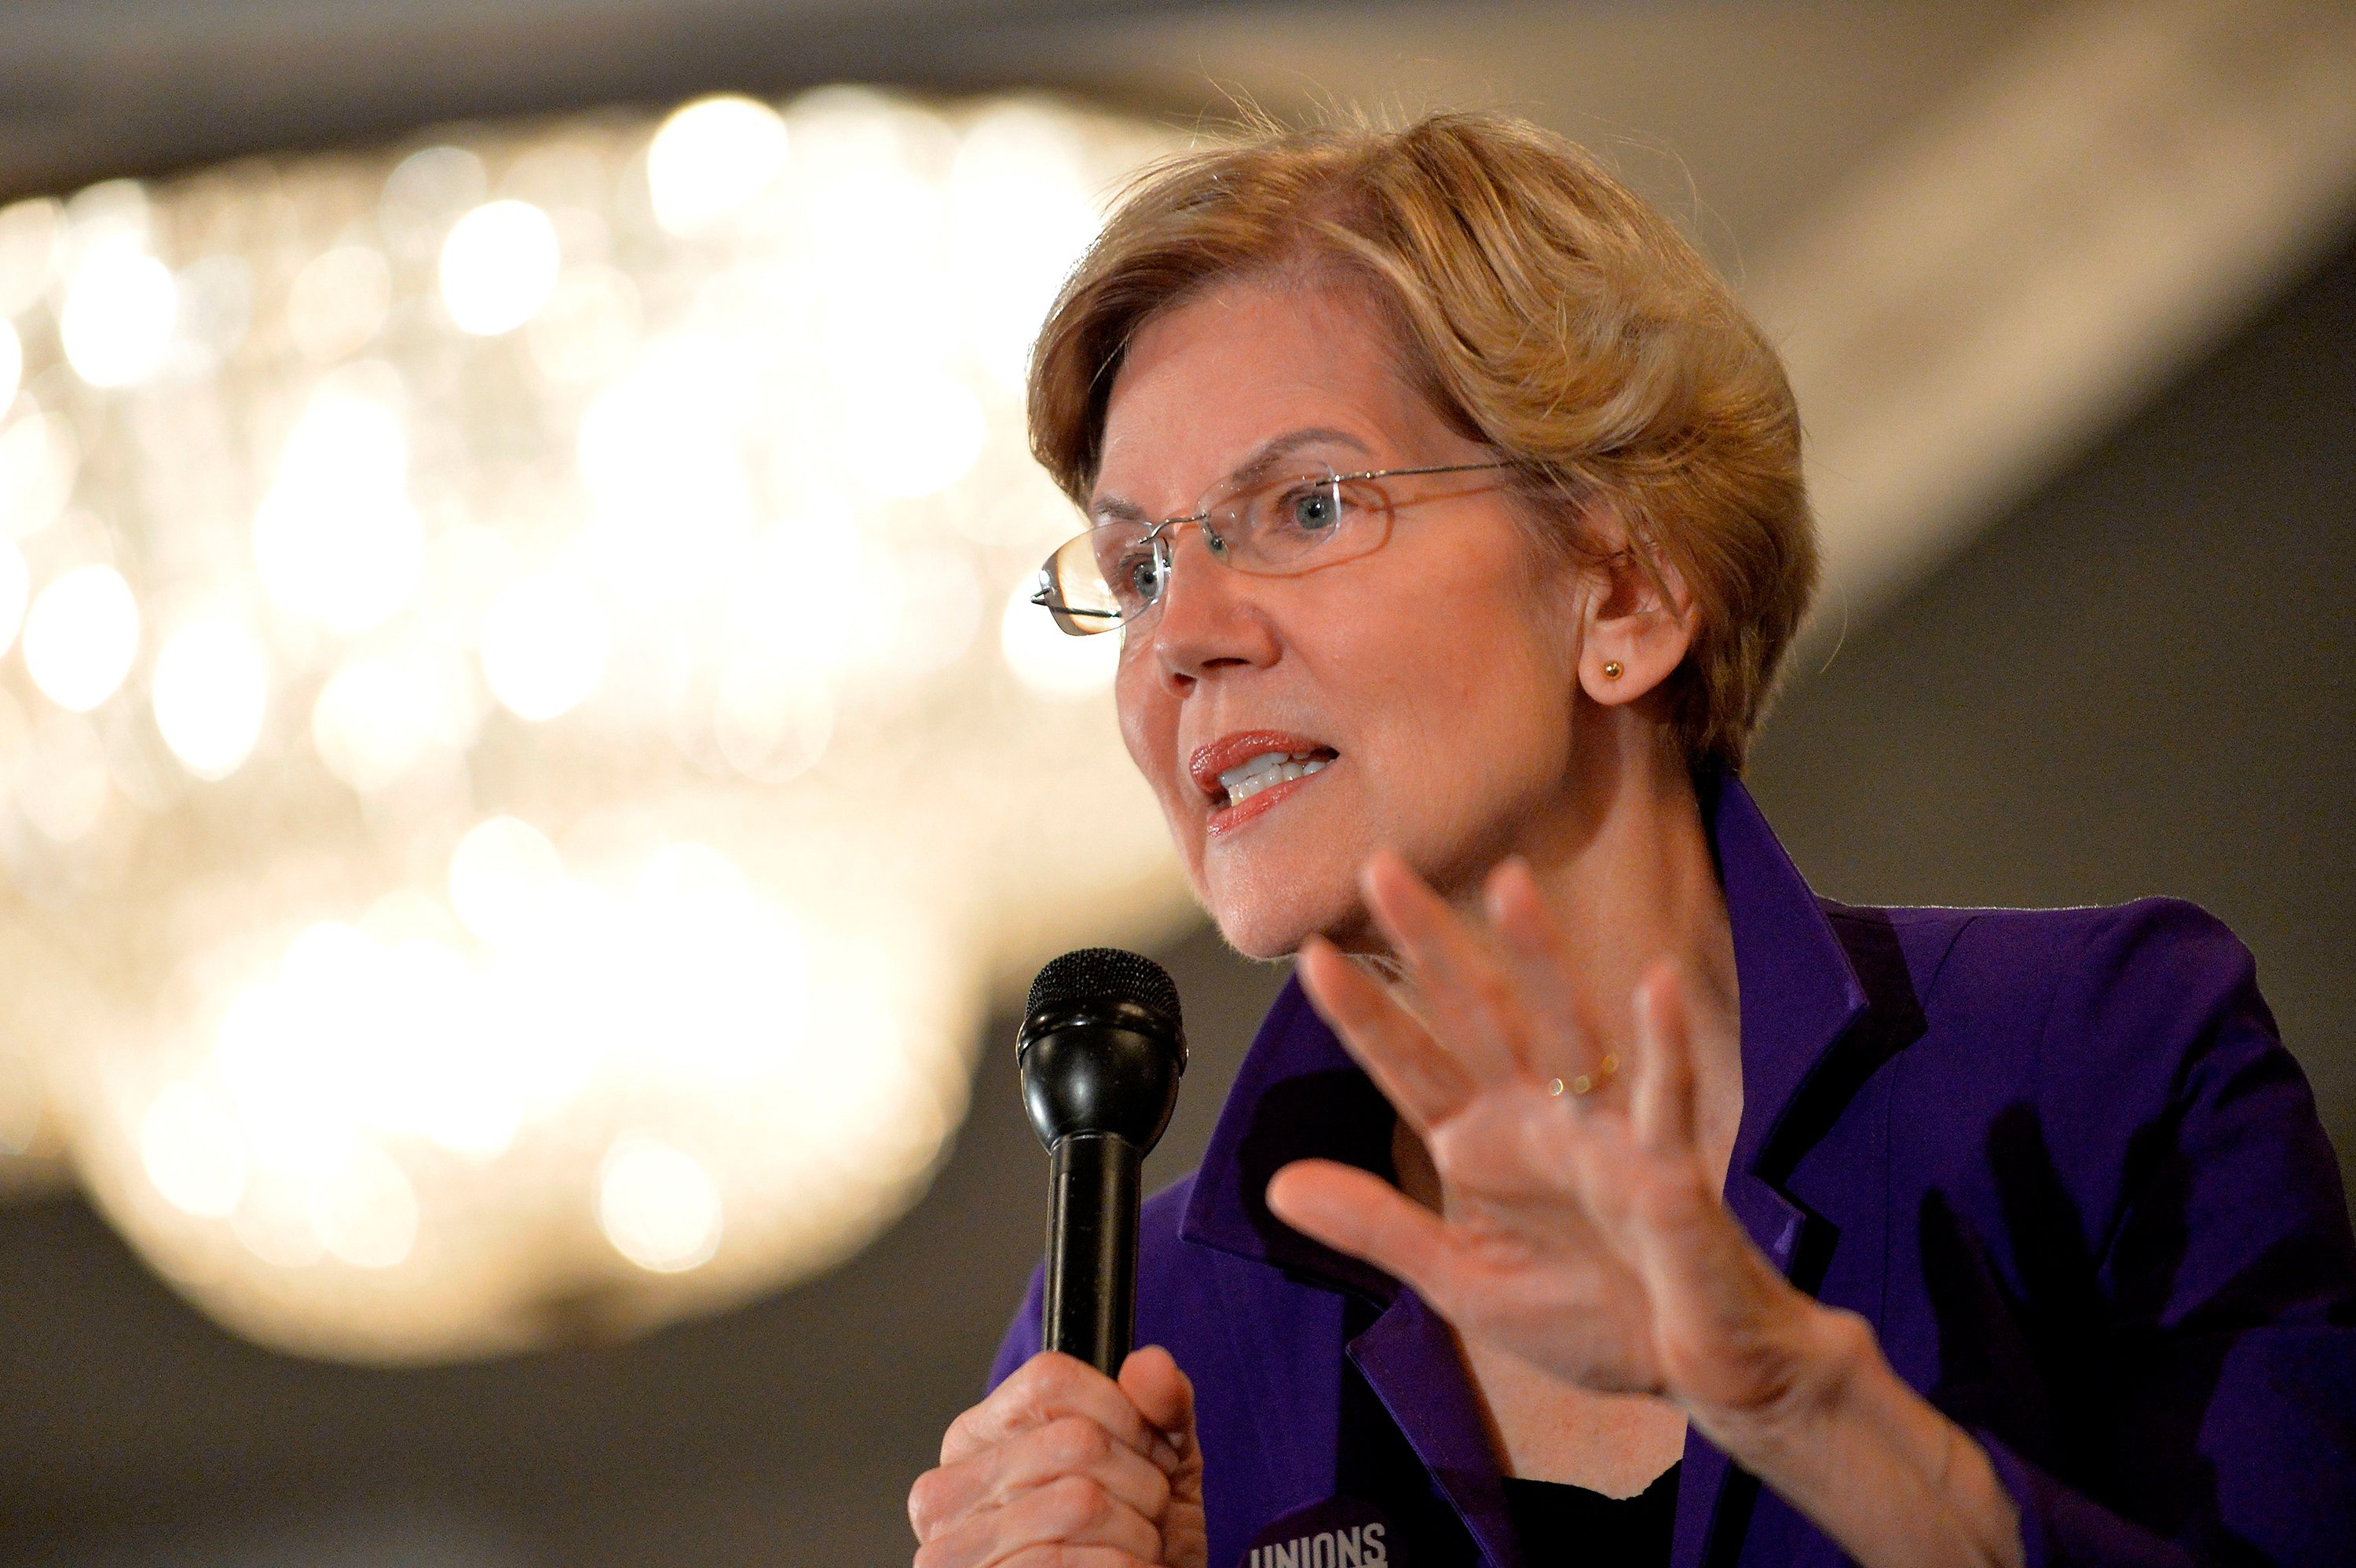 Elizabeth Warren releases plan to implement Medicare for All during first term in office